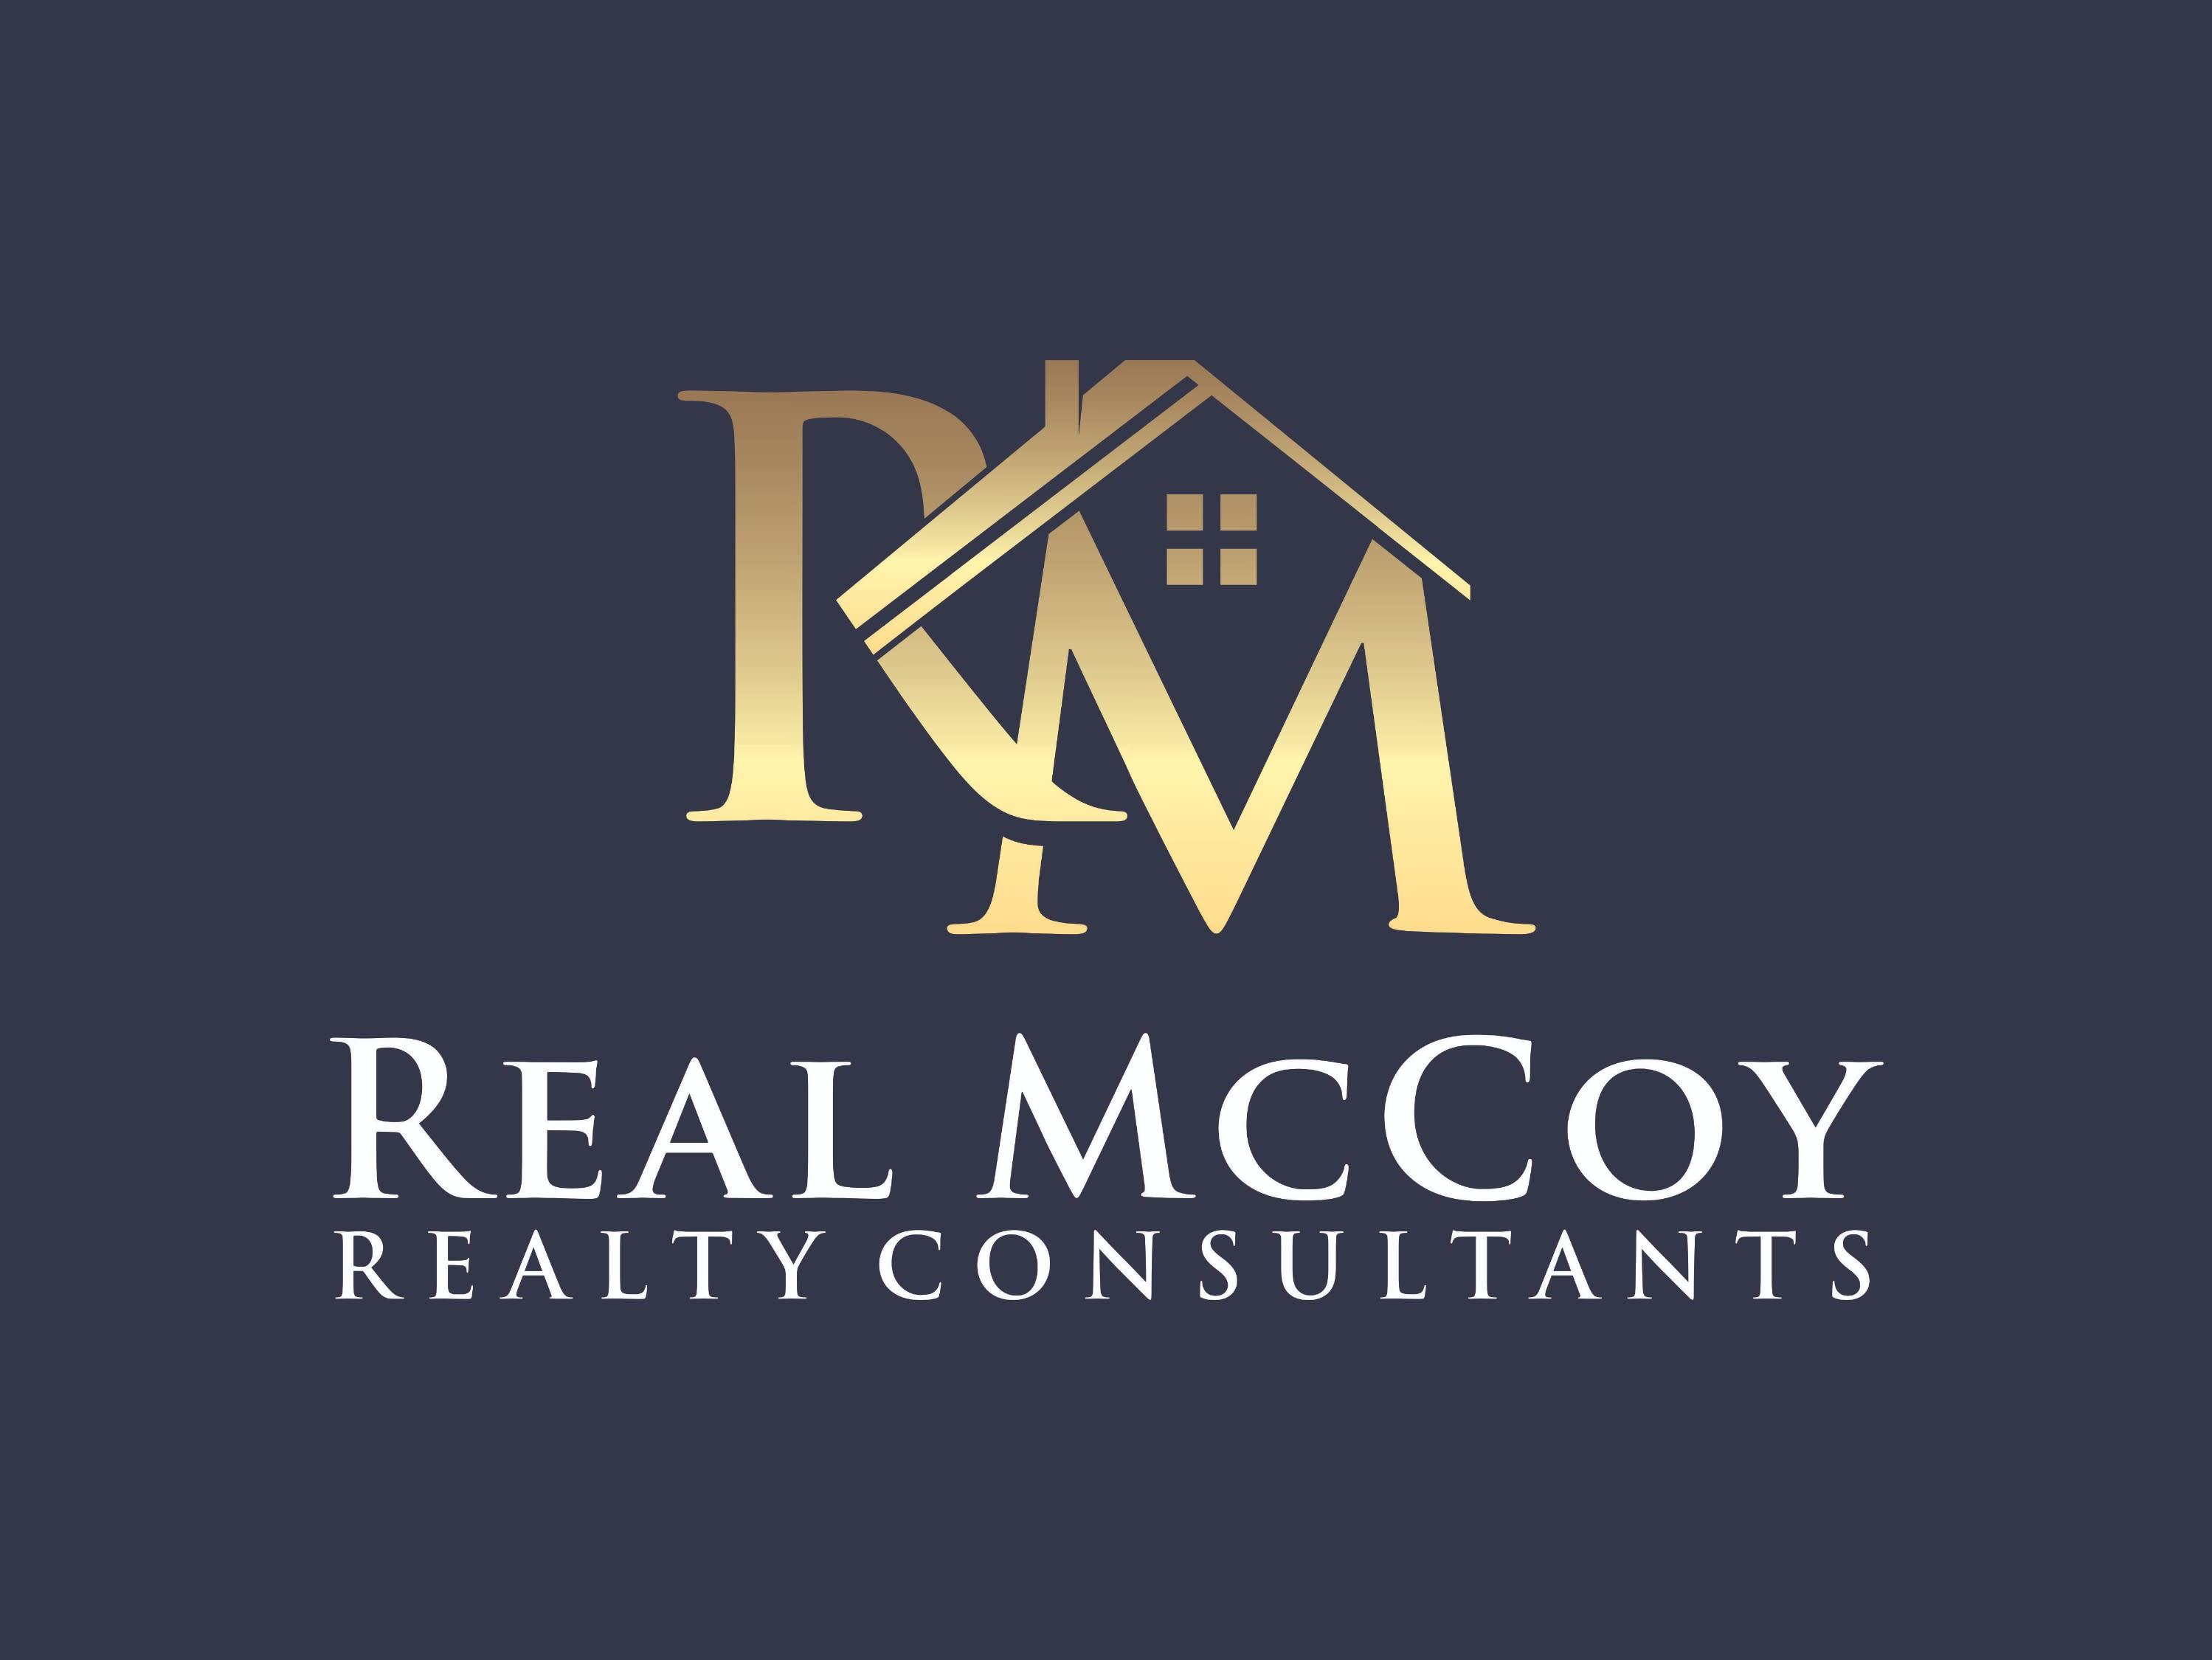 Call the Real McCoy